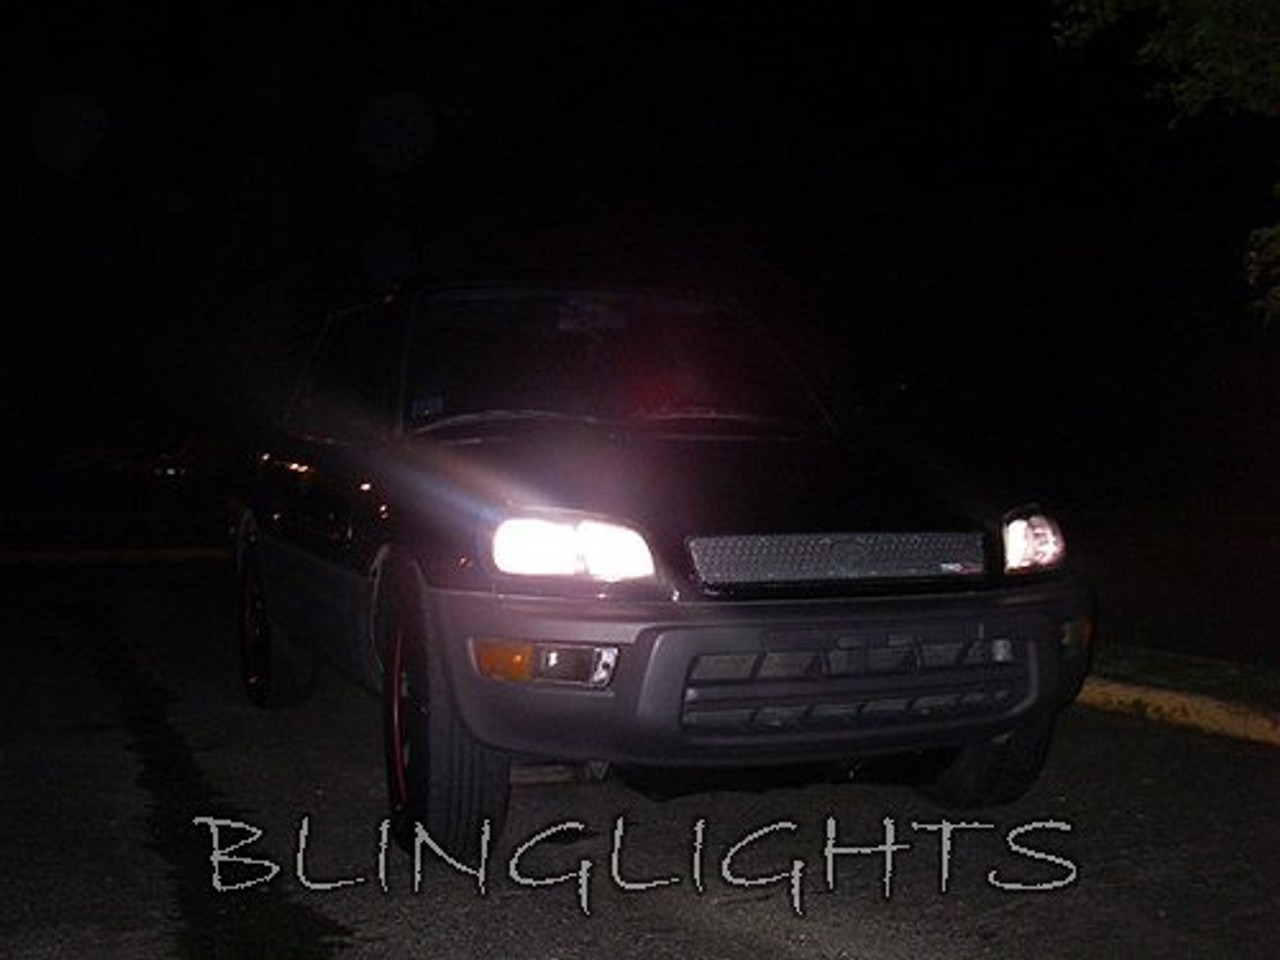 1995-2000 Toyota Rav4 Bright White Upgrade Light Bulbs for Headlamps Headlights Head Lamps Lights